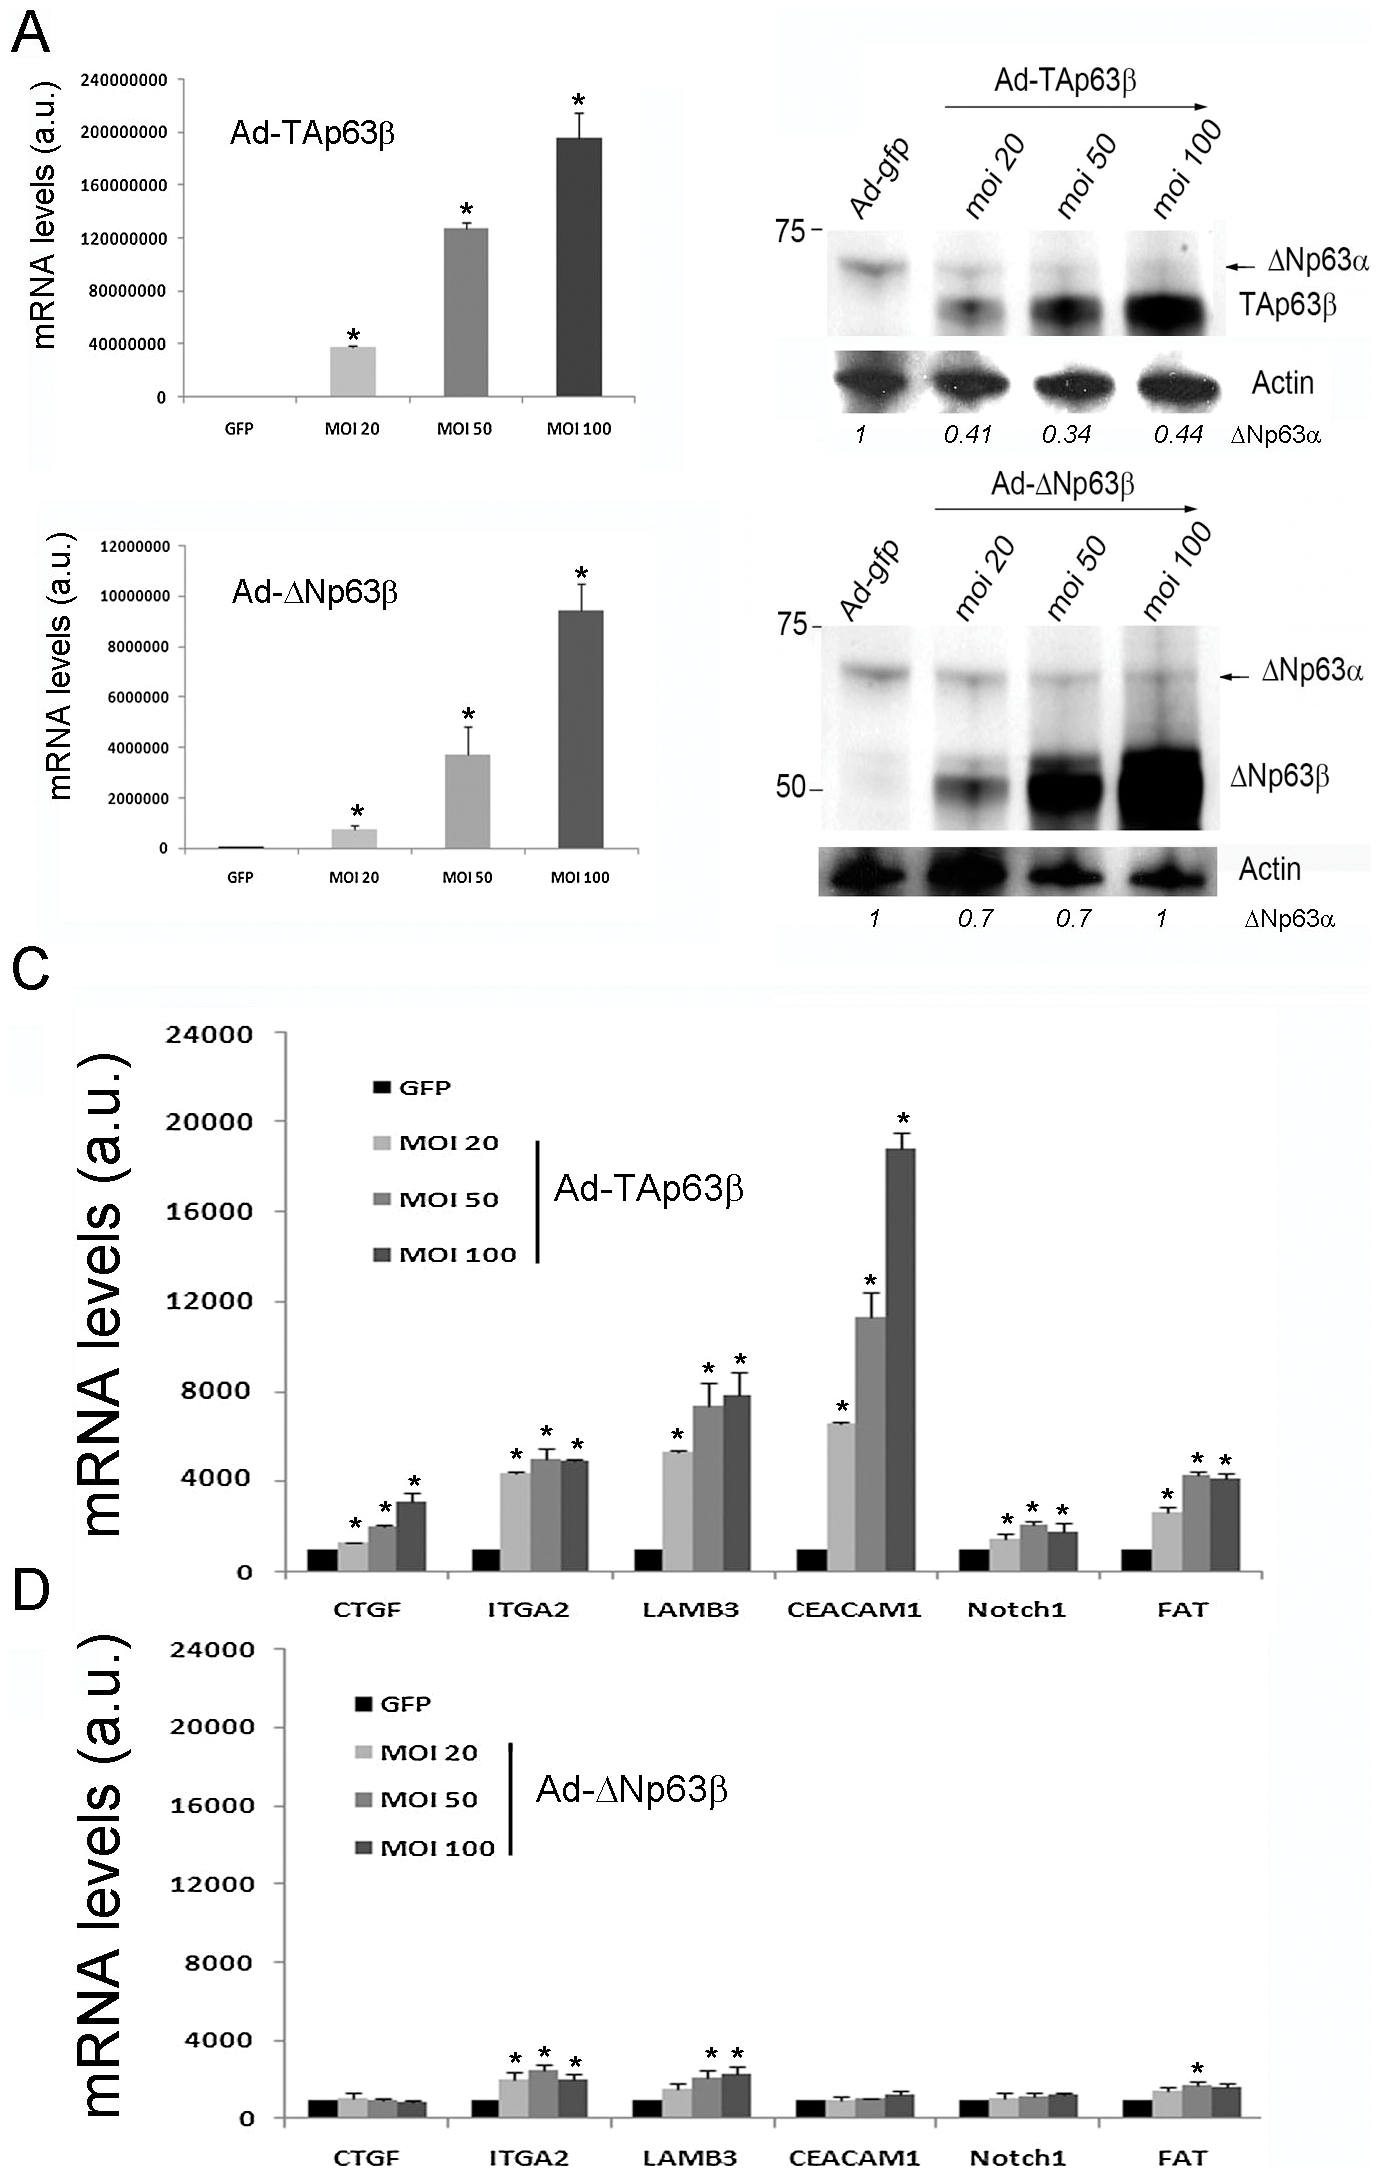 The adhesion genes are activated by TAp63β but not by ΔNp63β in Caski cells.